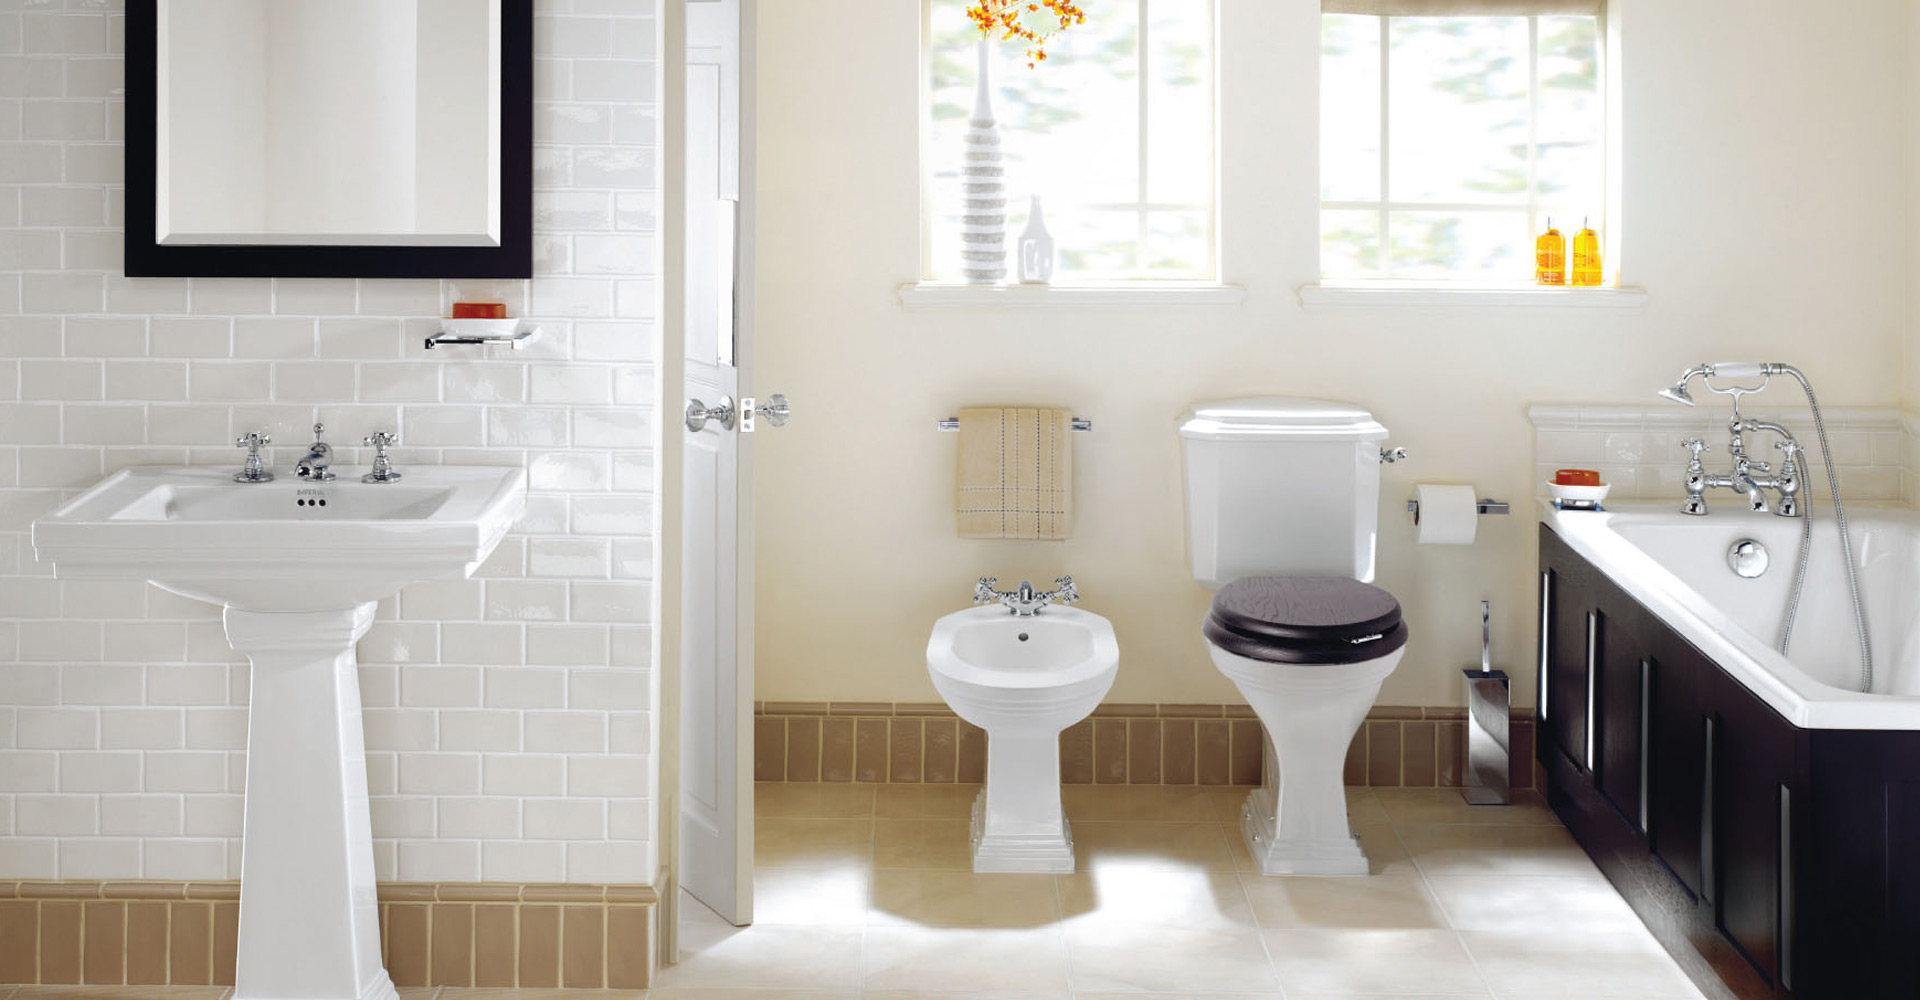 Get your Own Personal Spa Experience With Professional Bathroom Renovations